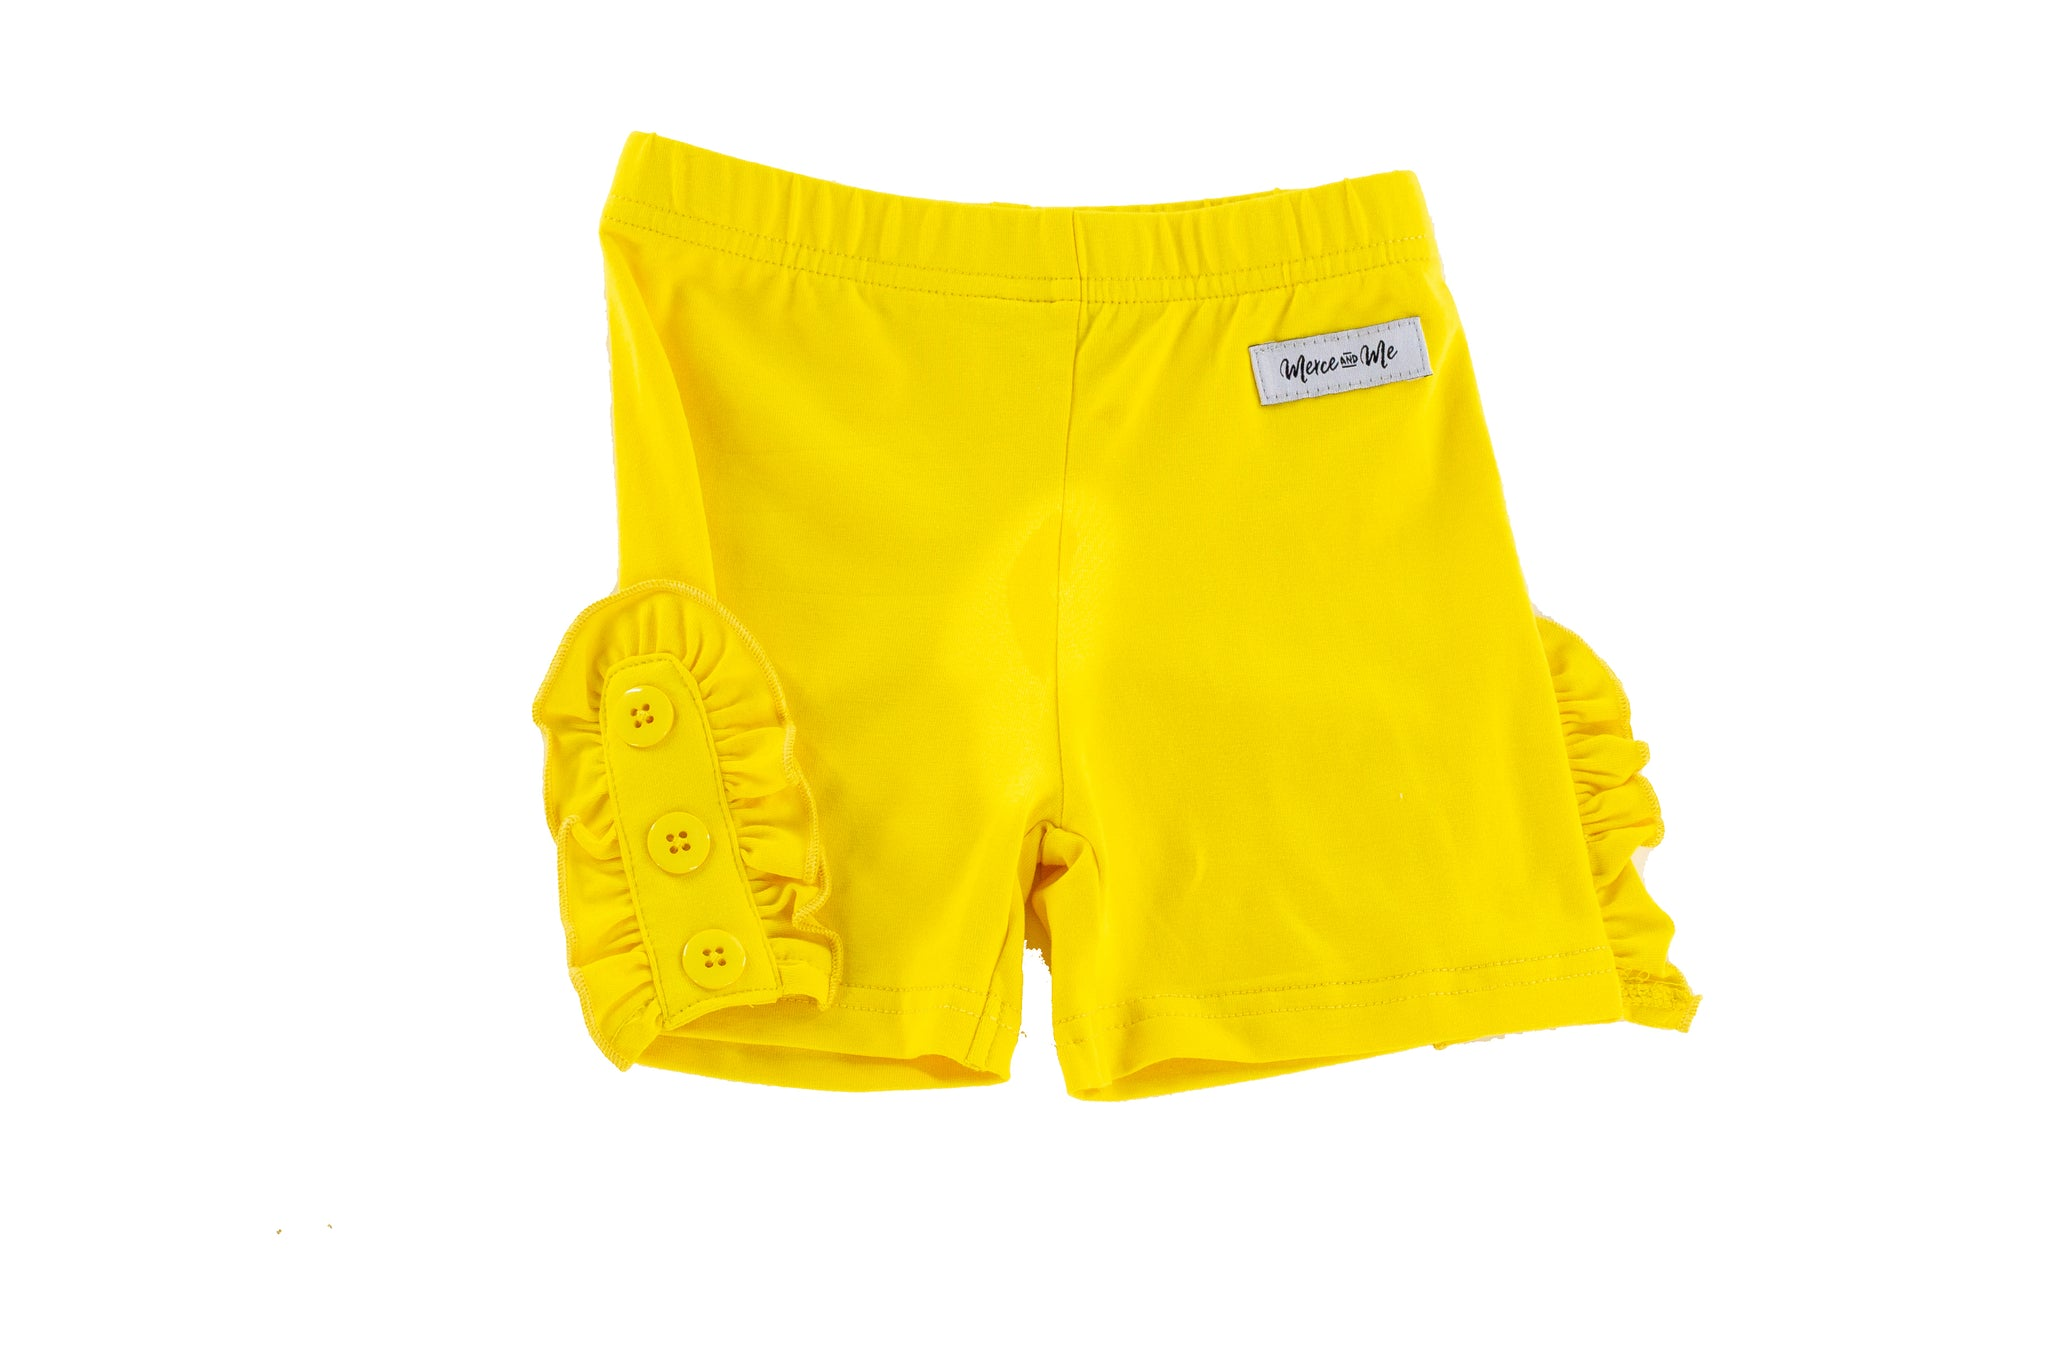 Bettie Buttons shorties in Yellow